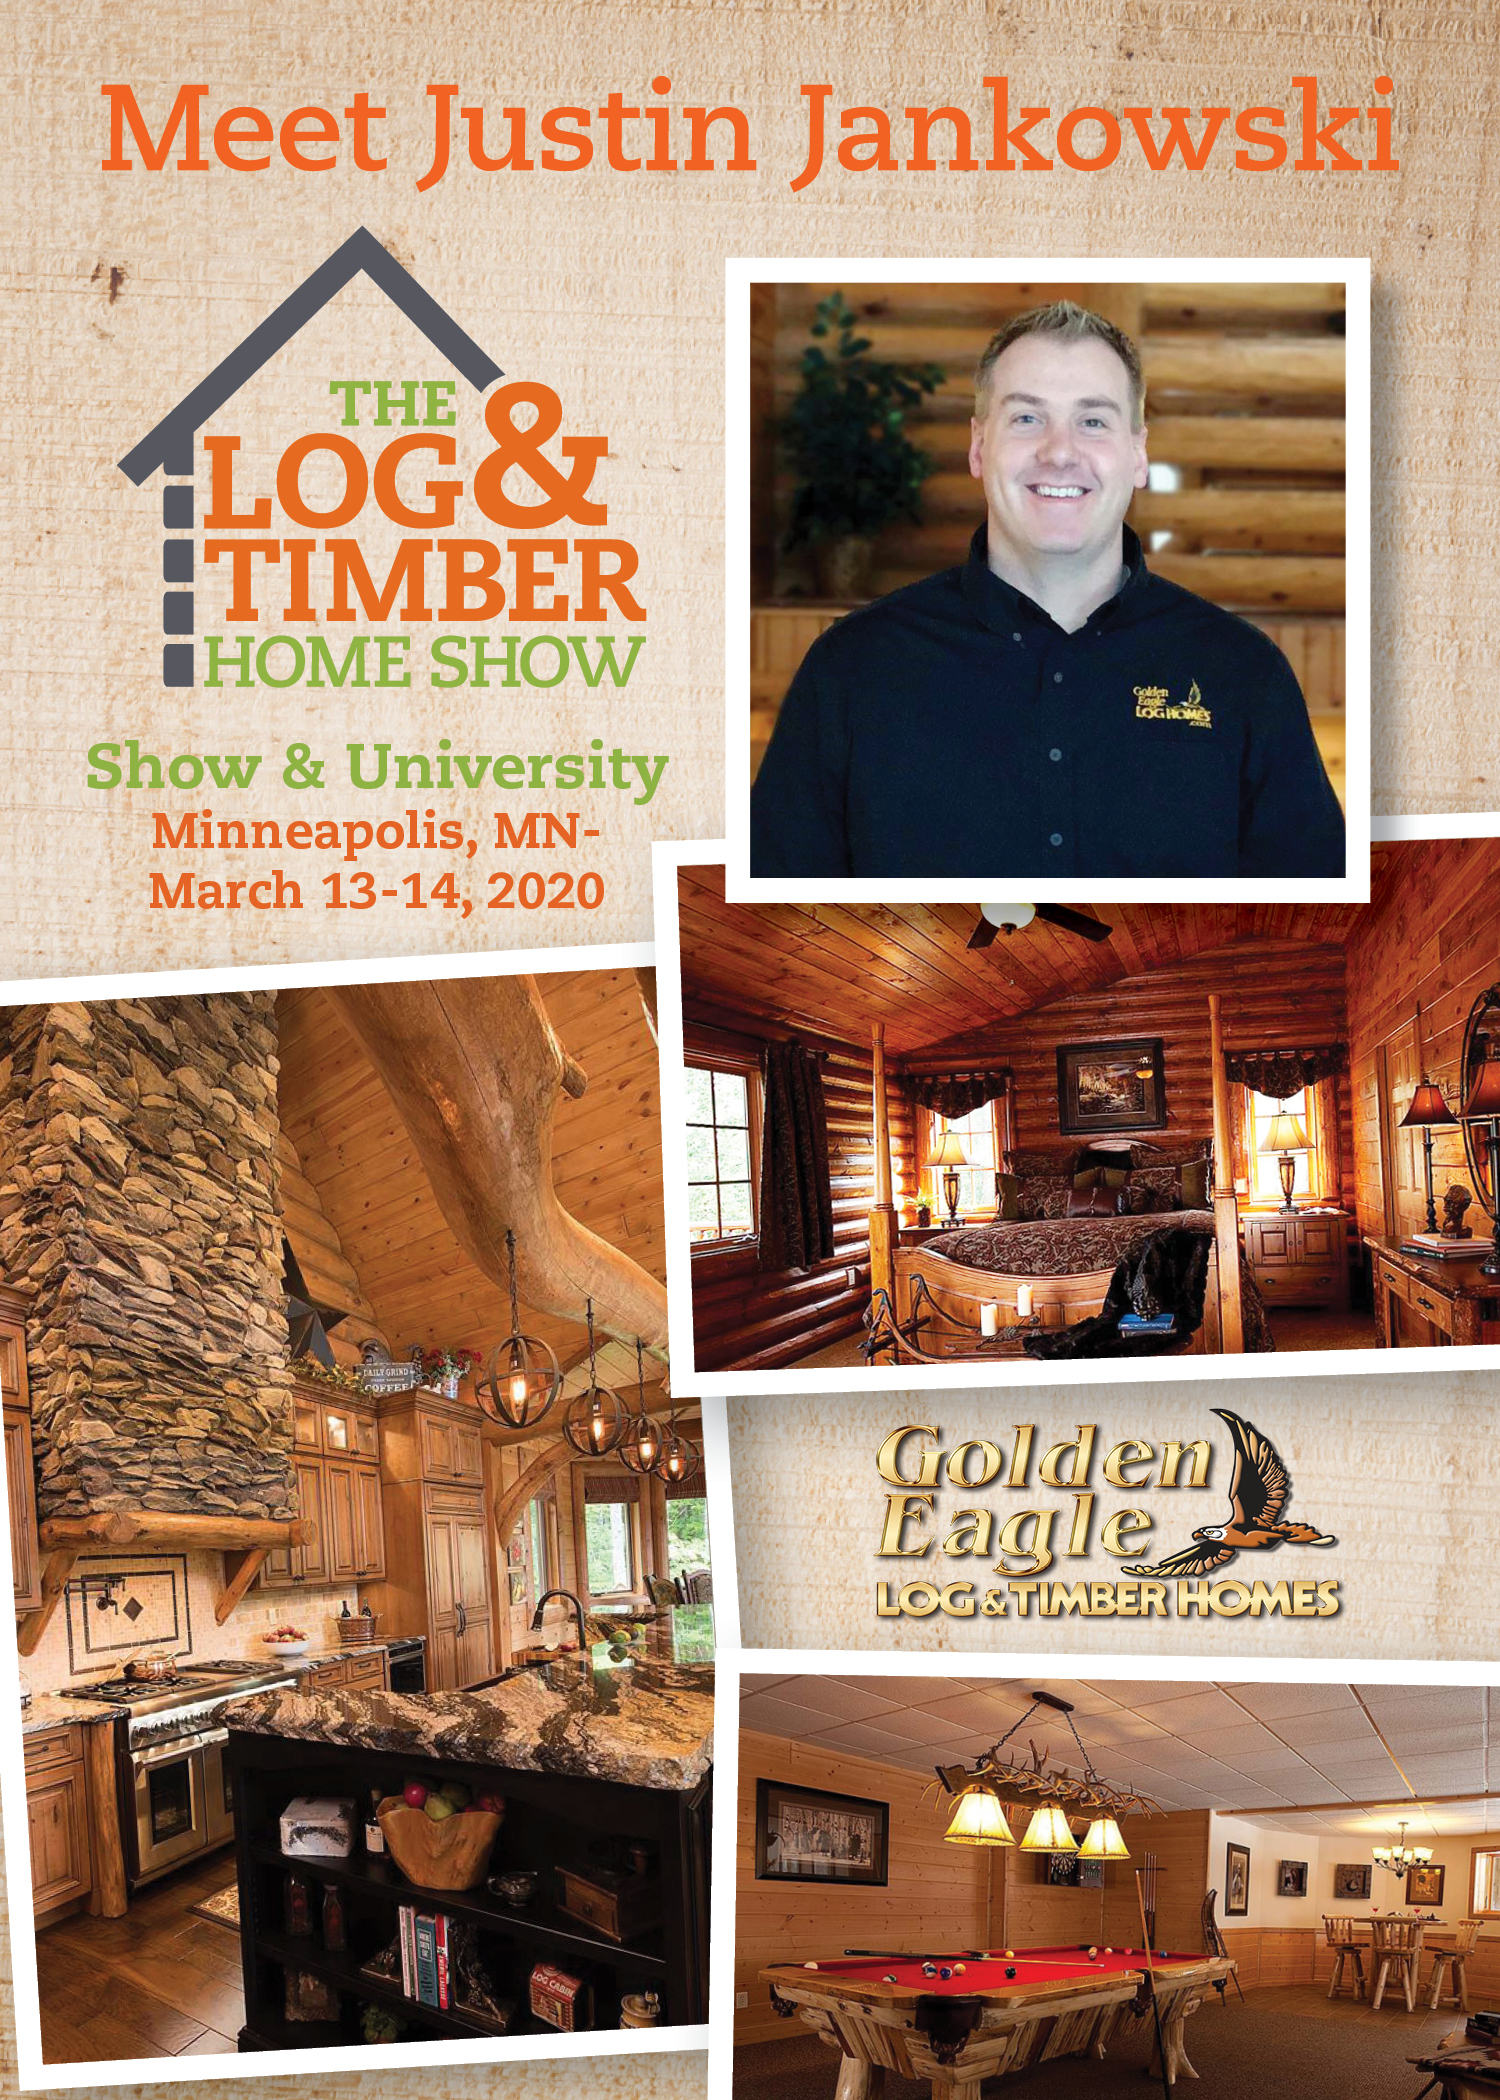 Golden Eagle Log & Timber Homes | Minneapolis, MN | March 13-14, 2020 | Workshop Presentation